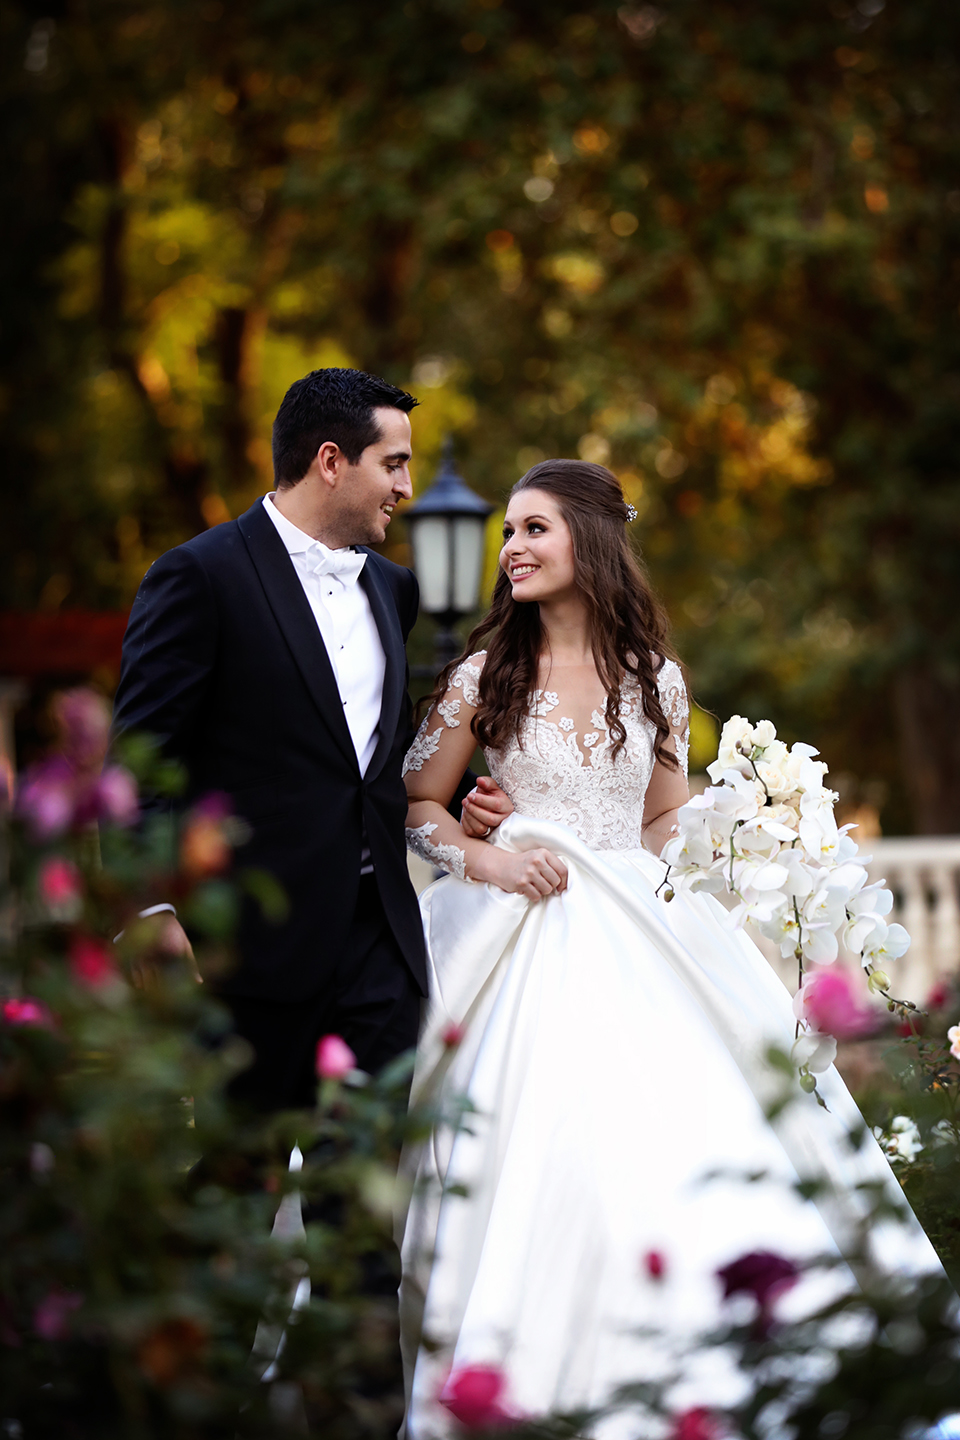 summer-place-hyde-park-wedding-photographers-estilo-photography-best-wedding-photographers-johannesburg-gauteng-italy-wedding-photographers-greece-wedding-photographers-stylish-wedding-elegant-wedding-photos-022.jpg